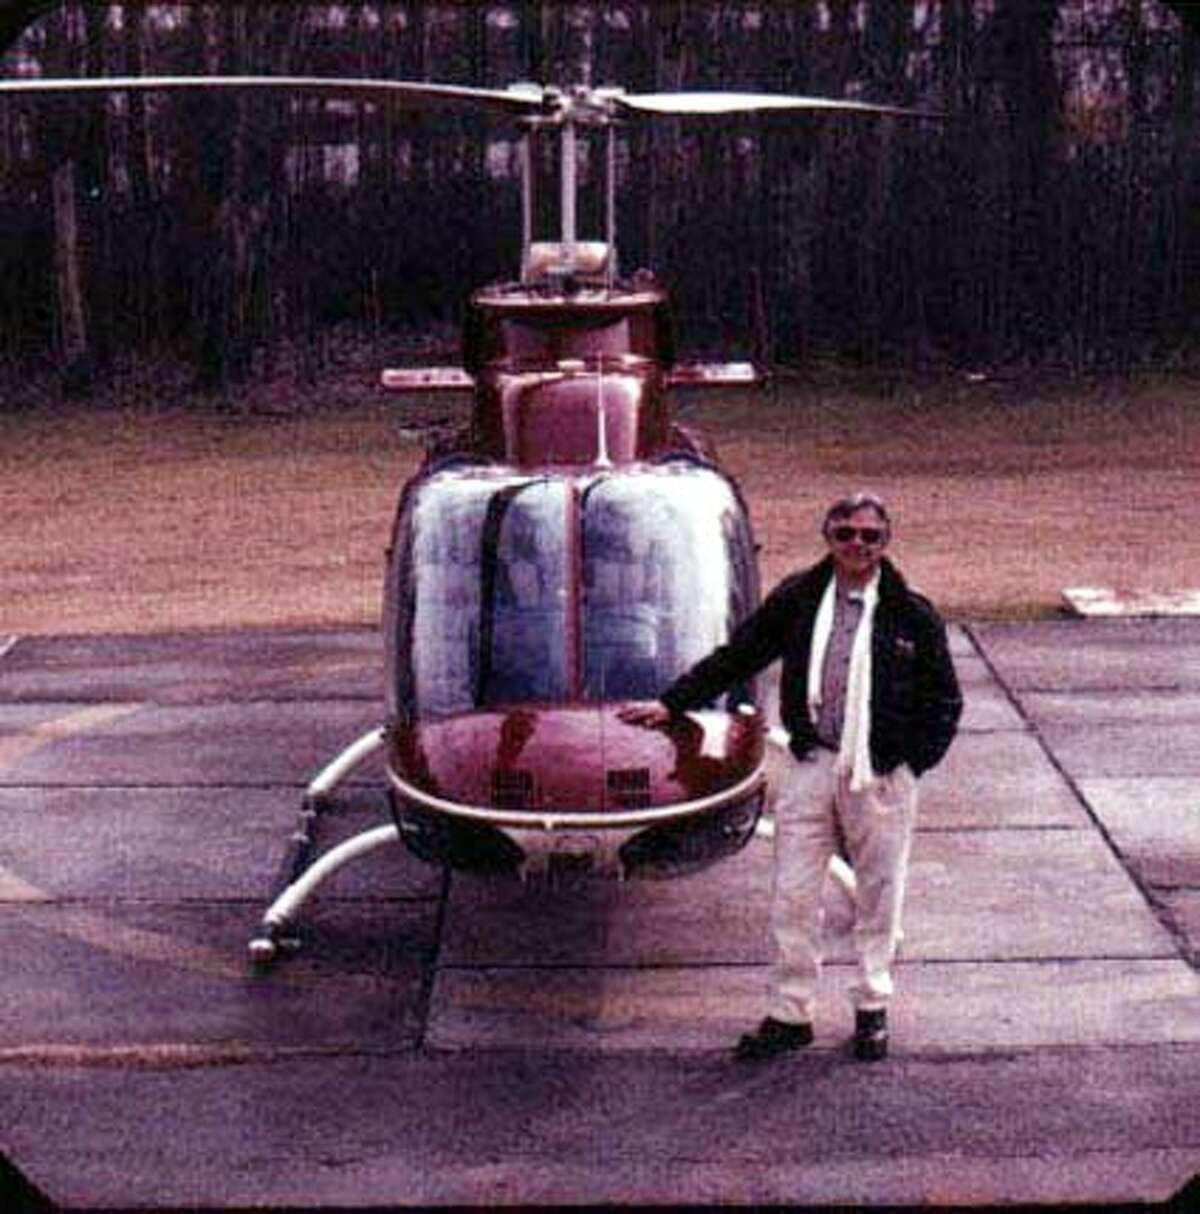 CARDOEN0302Z-C-04FEB03-MG-HO --- Carlos Cardoen stands next to one of his company helicopters (HANDOUT PHOTO)